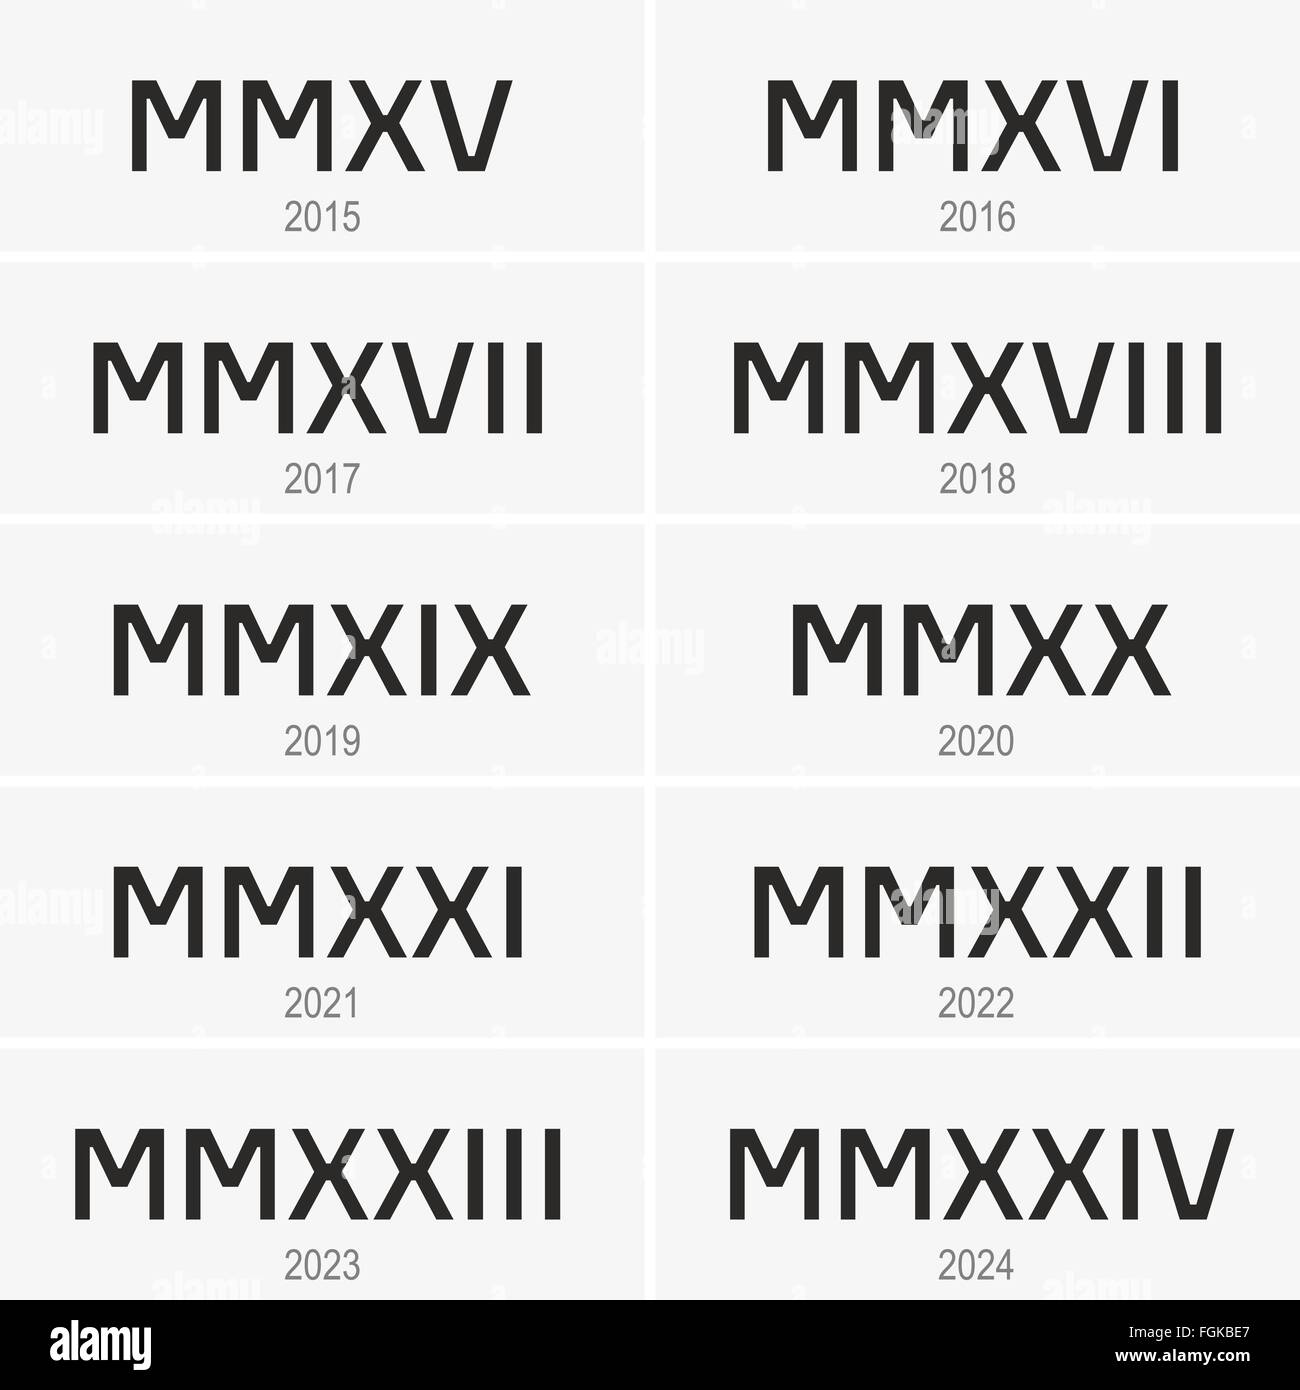 Years from 2015 to 2024 written in Roman numerals - Stock Image